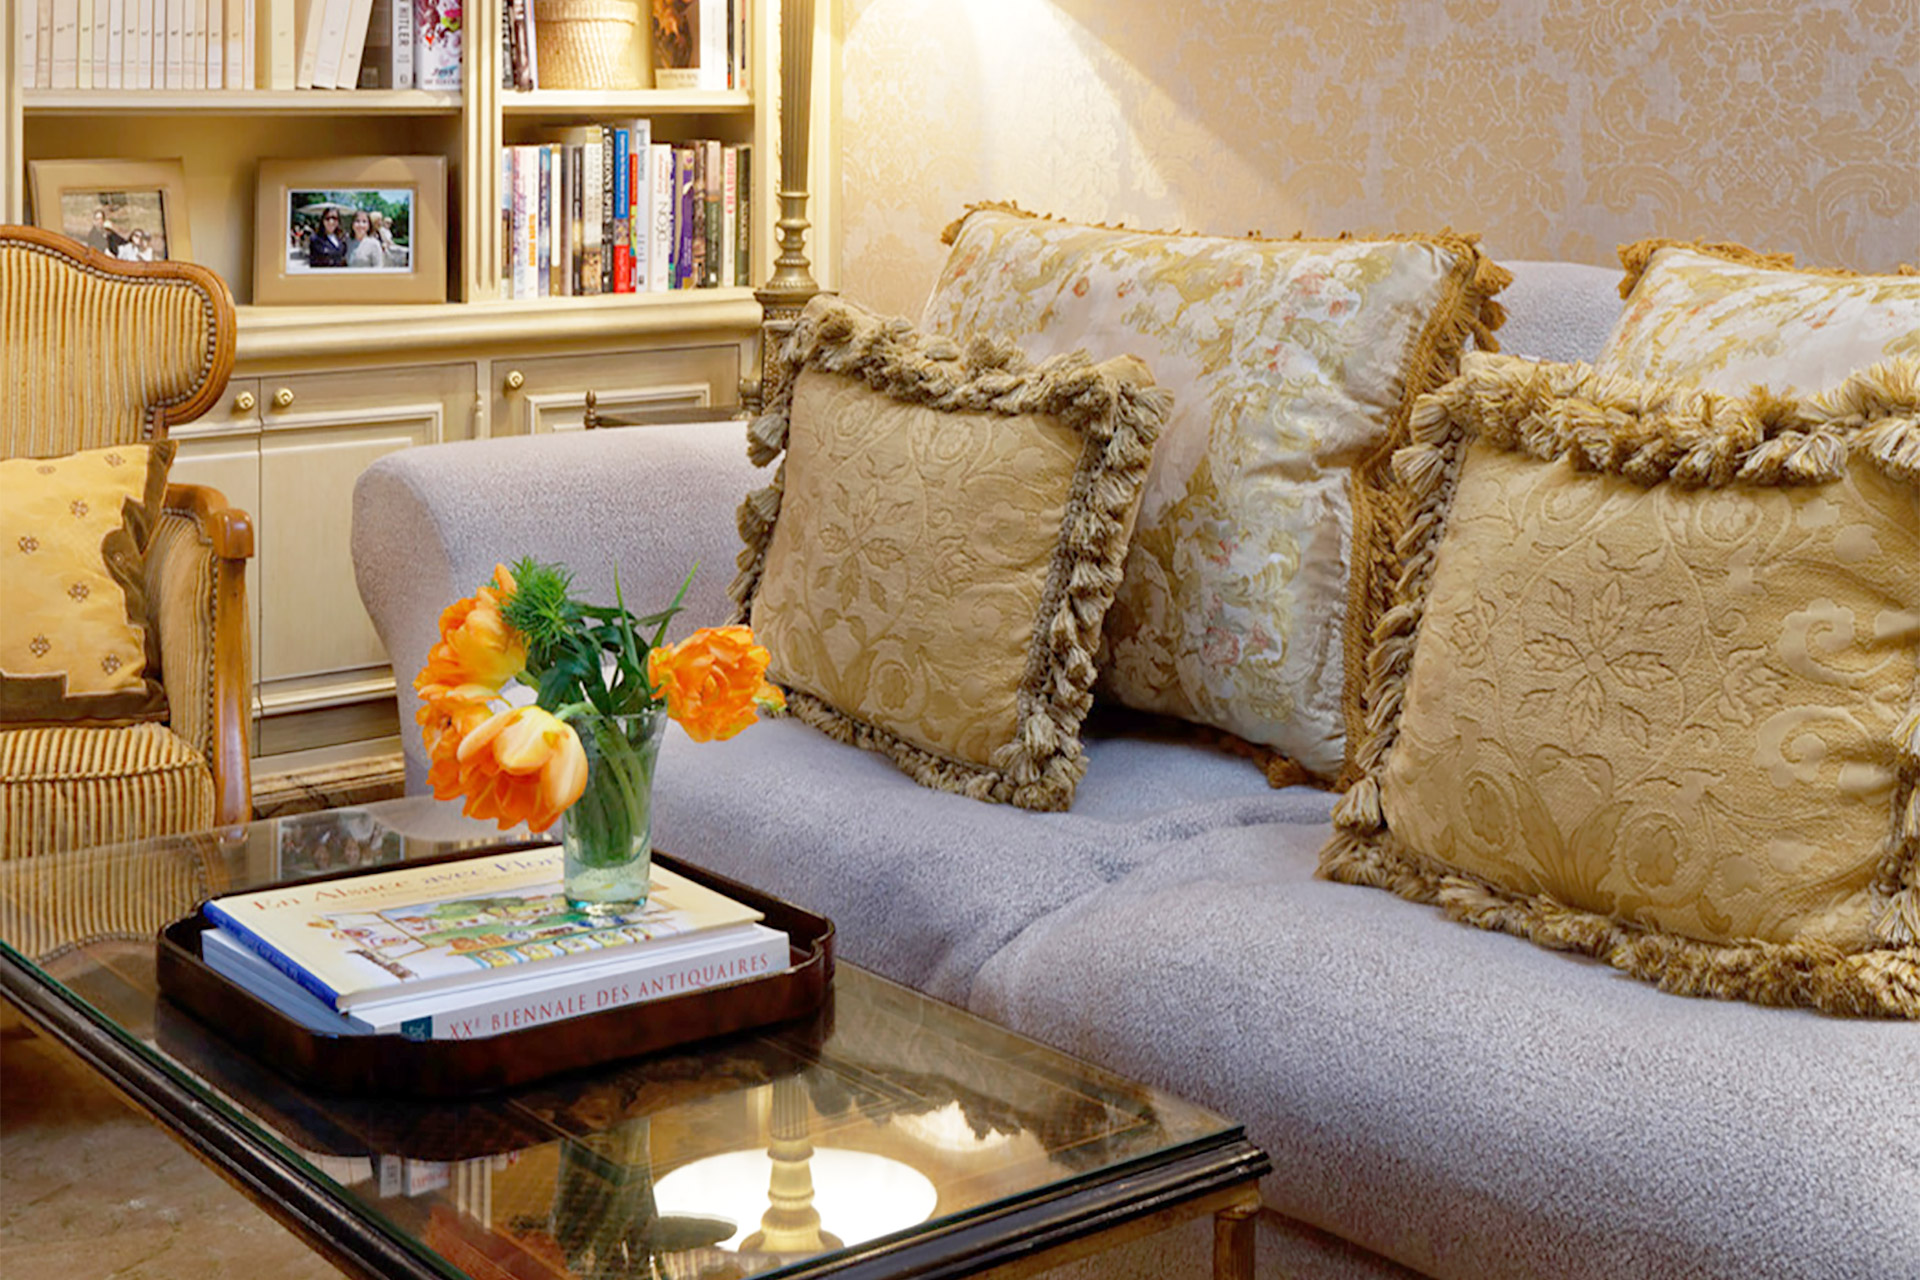 Quiet relaxation is a must in this calm second living room in the Bailly Paris vacation rental